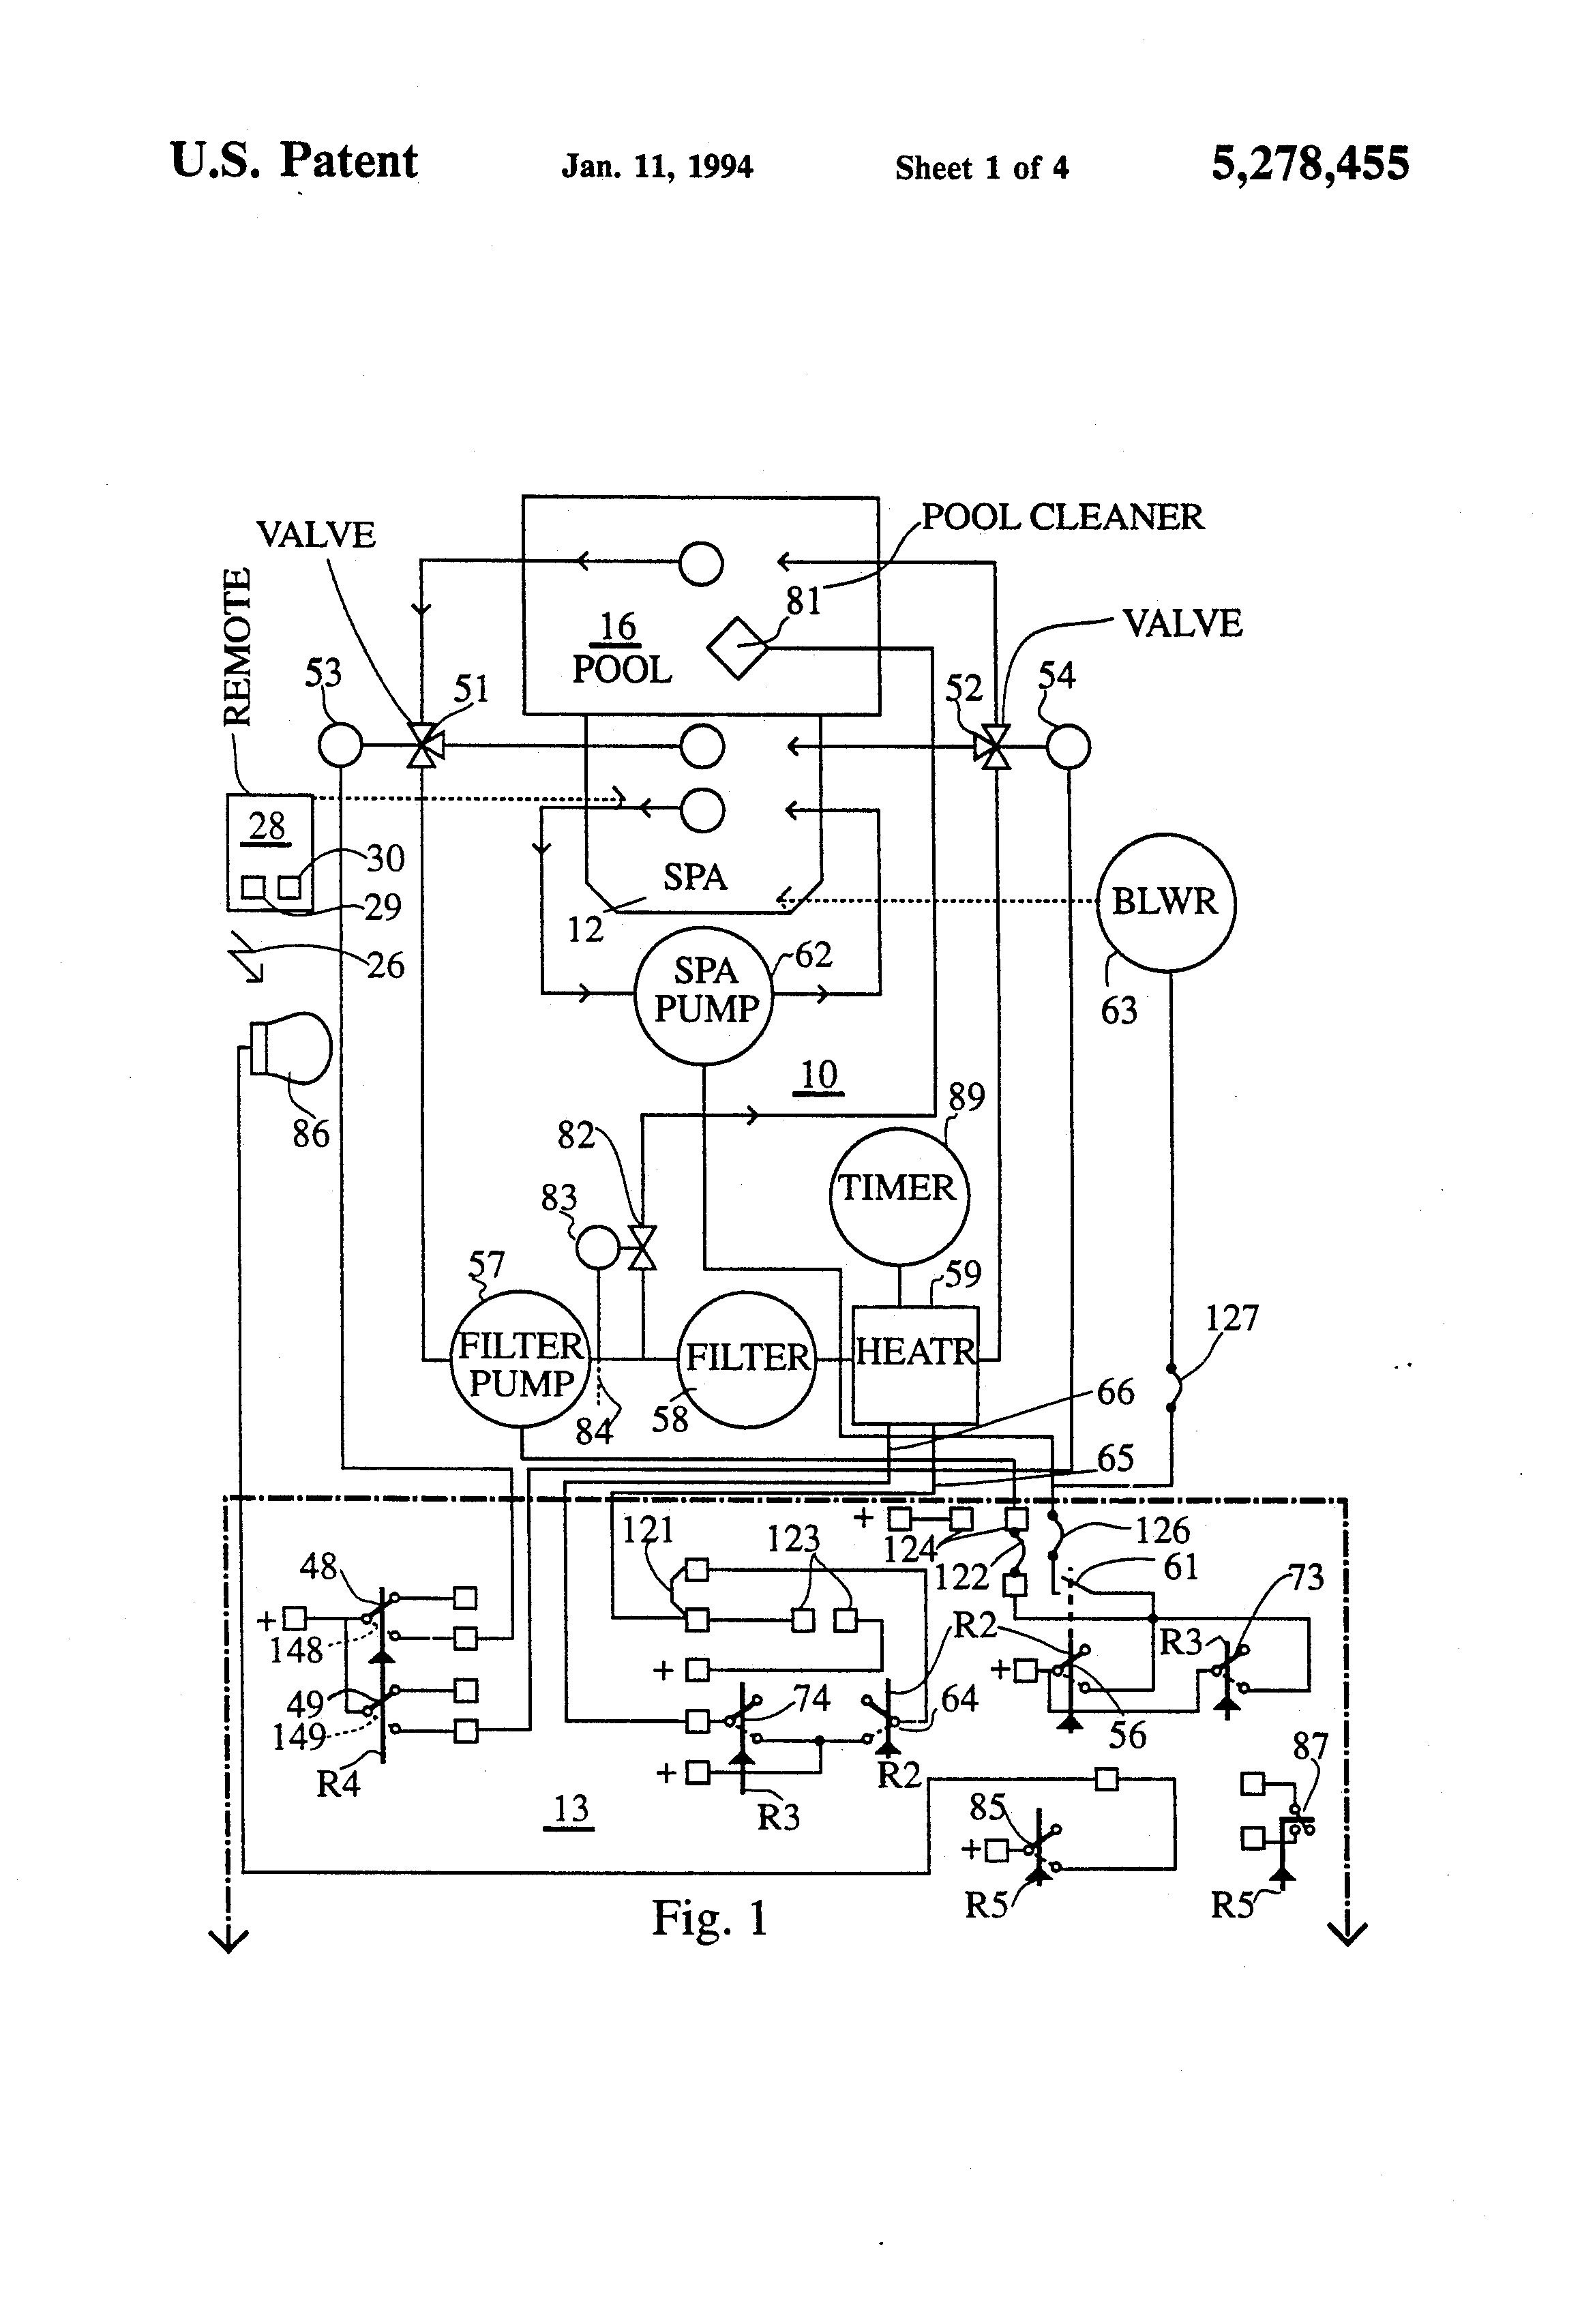 Hayward Pool Pump Wiring Diagram on common sprinkler system wiring diagram, hayward super ii pump diagram, hayward pool pump motor, hayward super pump wiring, hayward pool pump impeller diagram, hayward 400 heater wiring diagram, hayward pool pump impeller sp1500l, swimming pool wiring diagram, hayward variable speed pool pump install, hayward pump electrical diagram, hayward super pump vs diagram, hayward pool pump electrical connections, hayward pool pump troubleshooting, hayward pool pump exploded view, hayward pool pump parts, hayward super pump gasket diagram, hayward pool sand filter replacement parts, hayward pump schematic, motor wiring diagram, hayward pool pump lubrication,